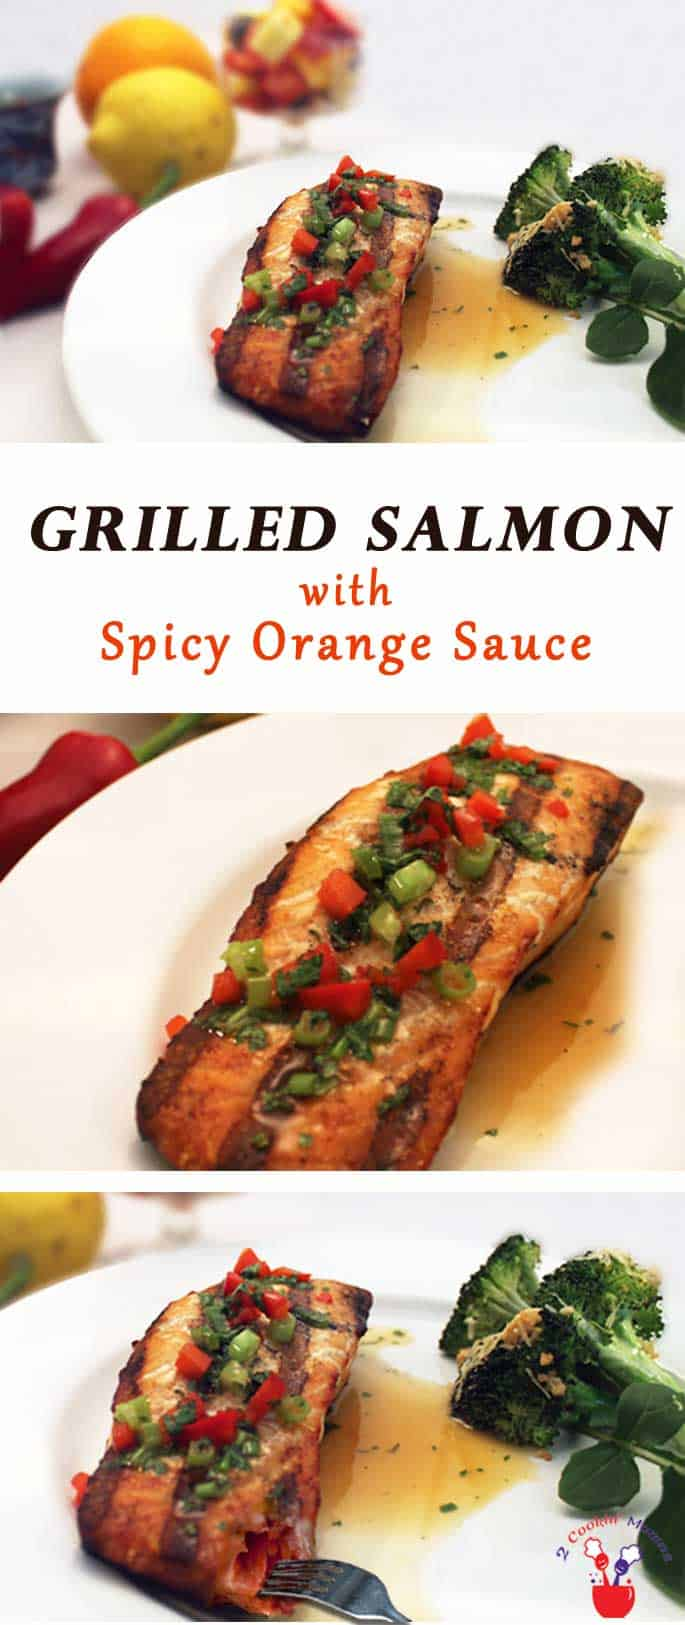 Grilled Salmon with Spicy Orange Sauce | 2 Cookin Mamas A simple grilled salmon fillet spiced up with a sweet & tangy sauce. Serve it over brown rice with a side of broccoli for the perfect healthy dinner.